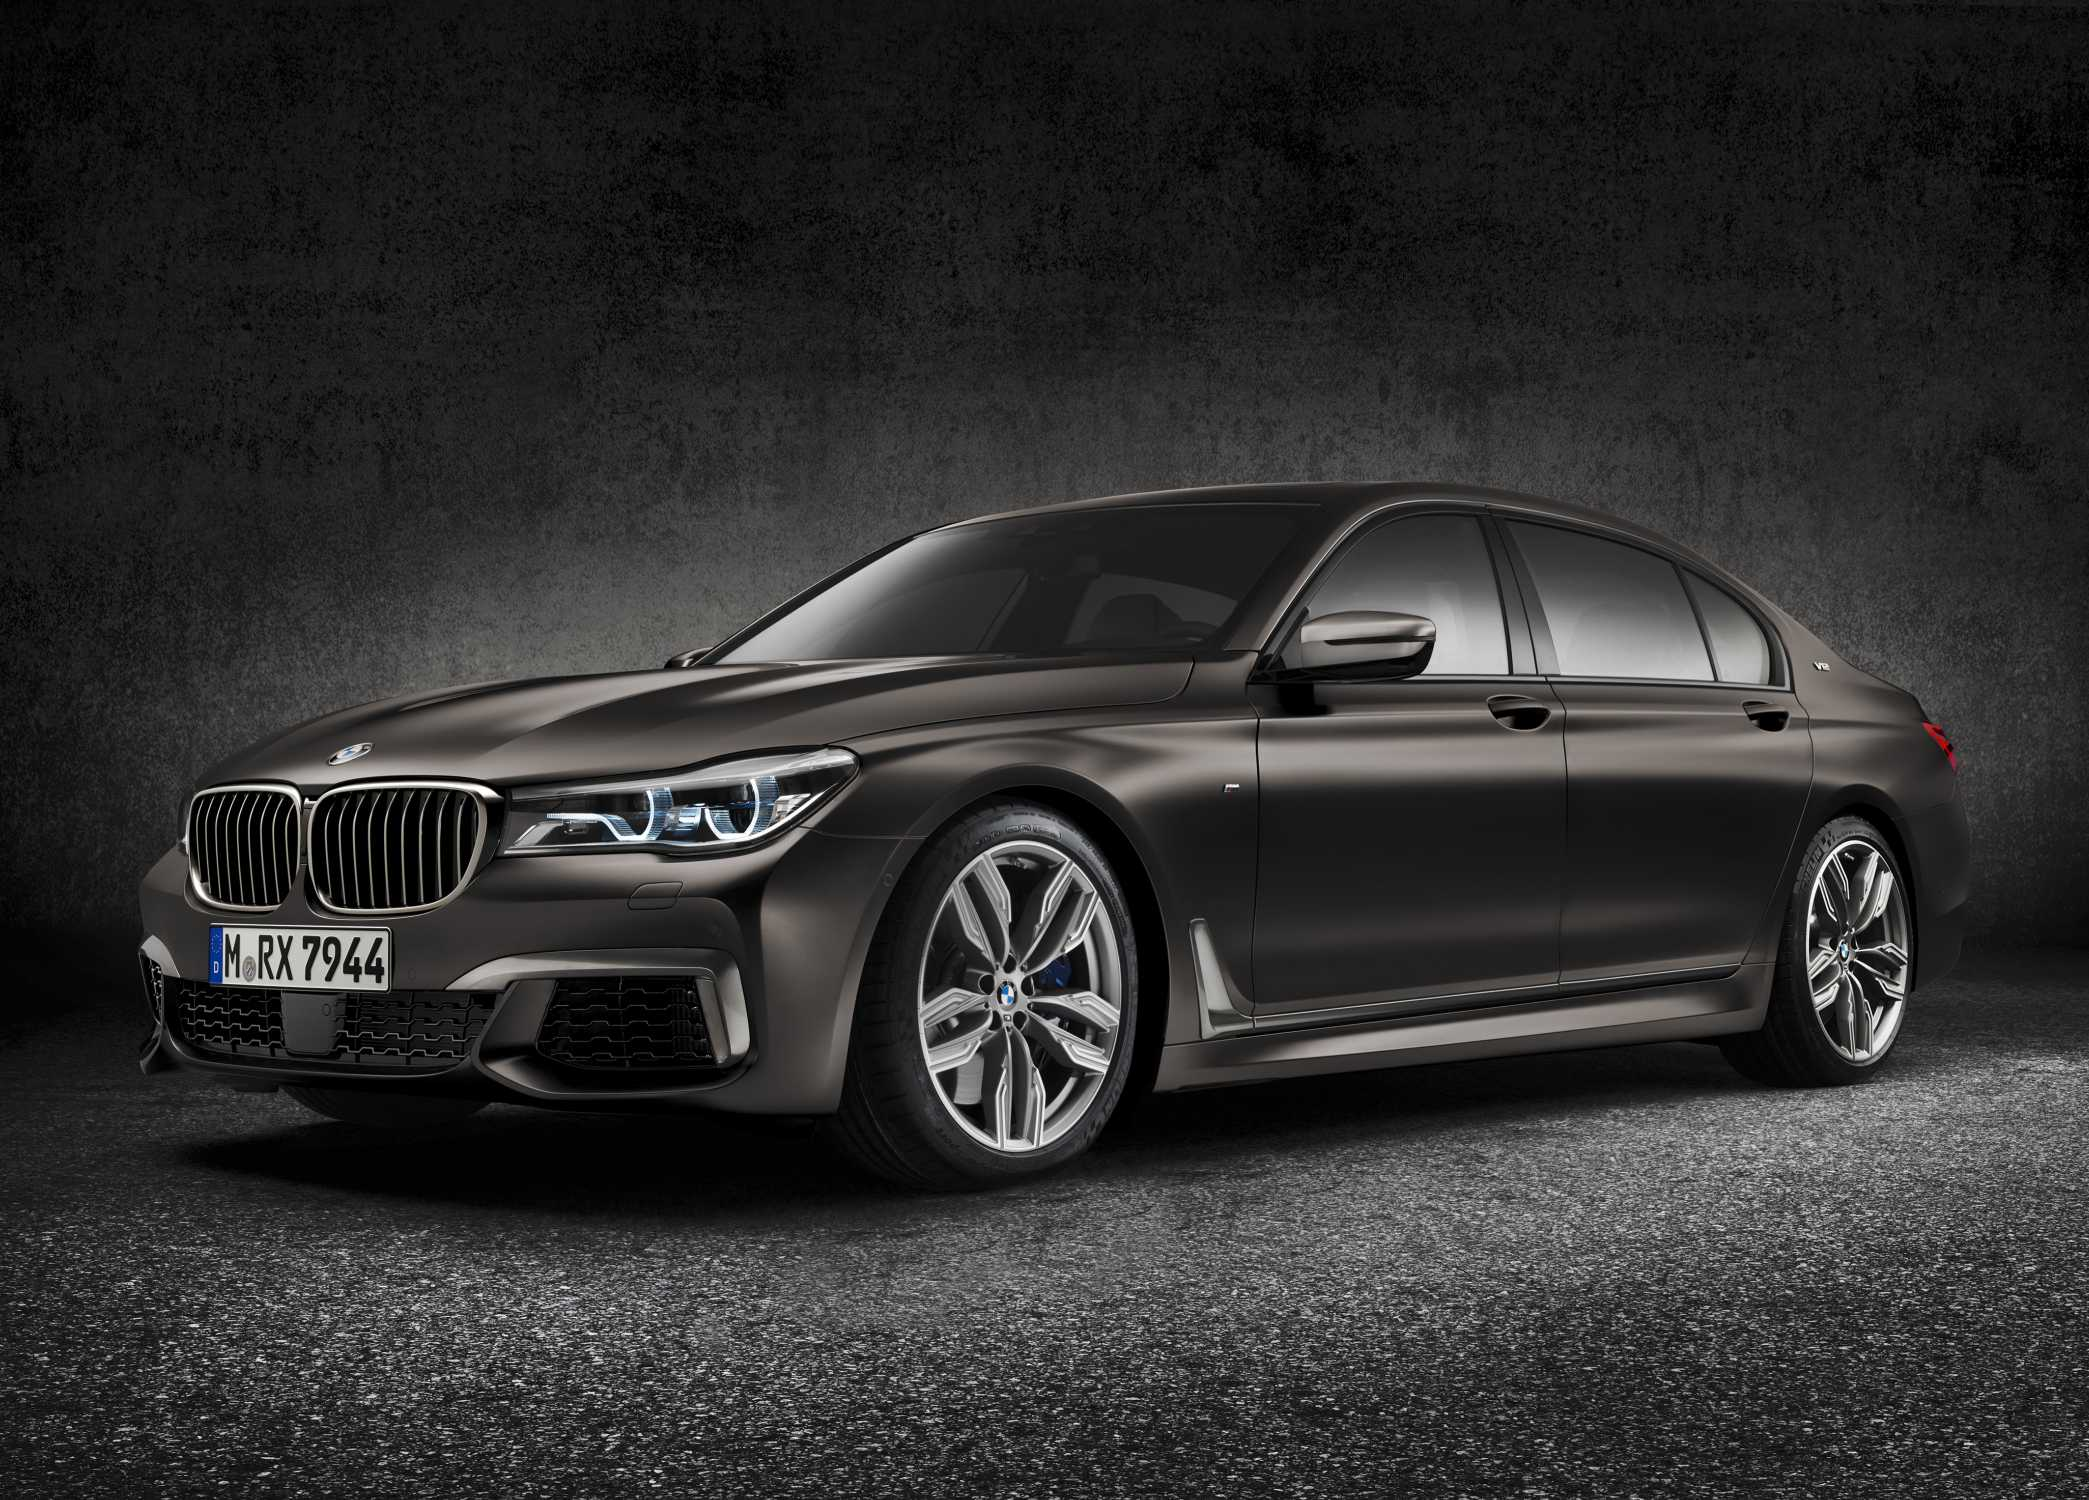 The New BMW M760Li XDrive